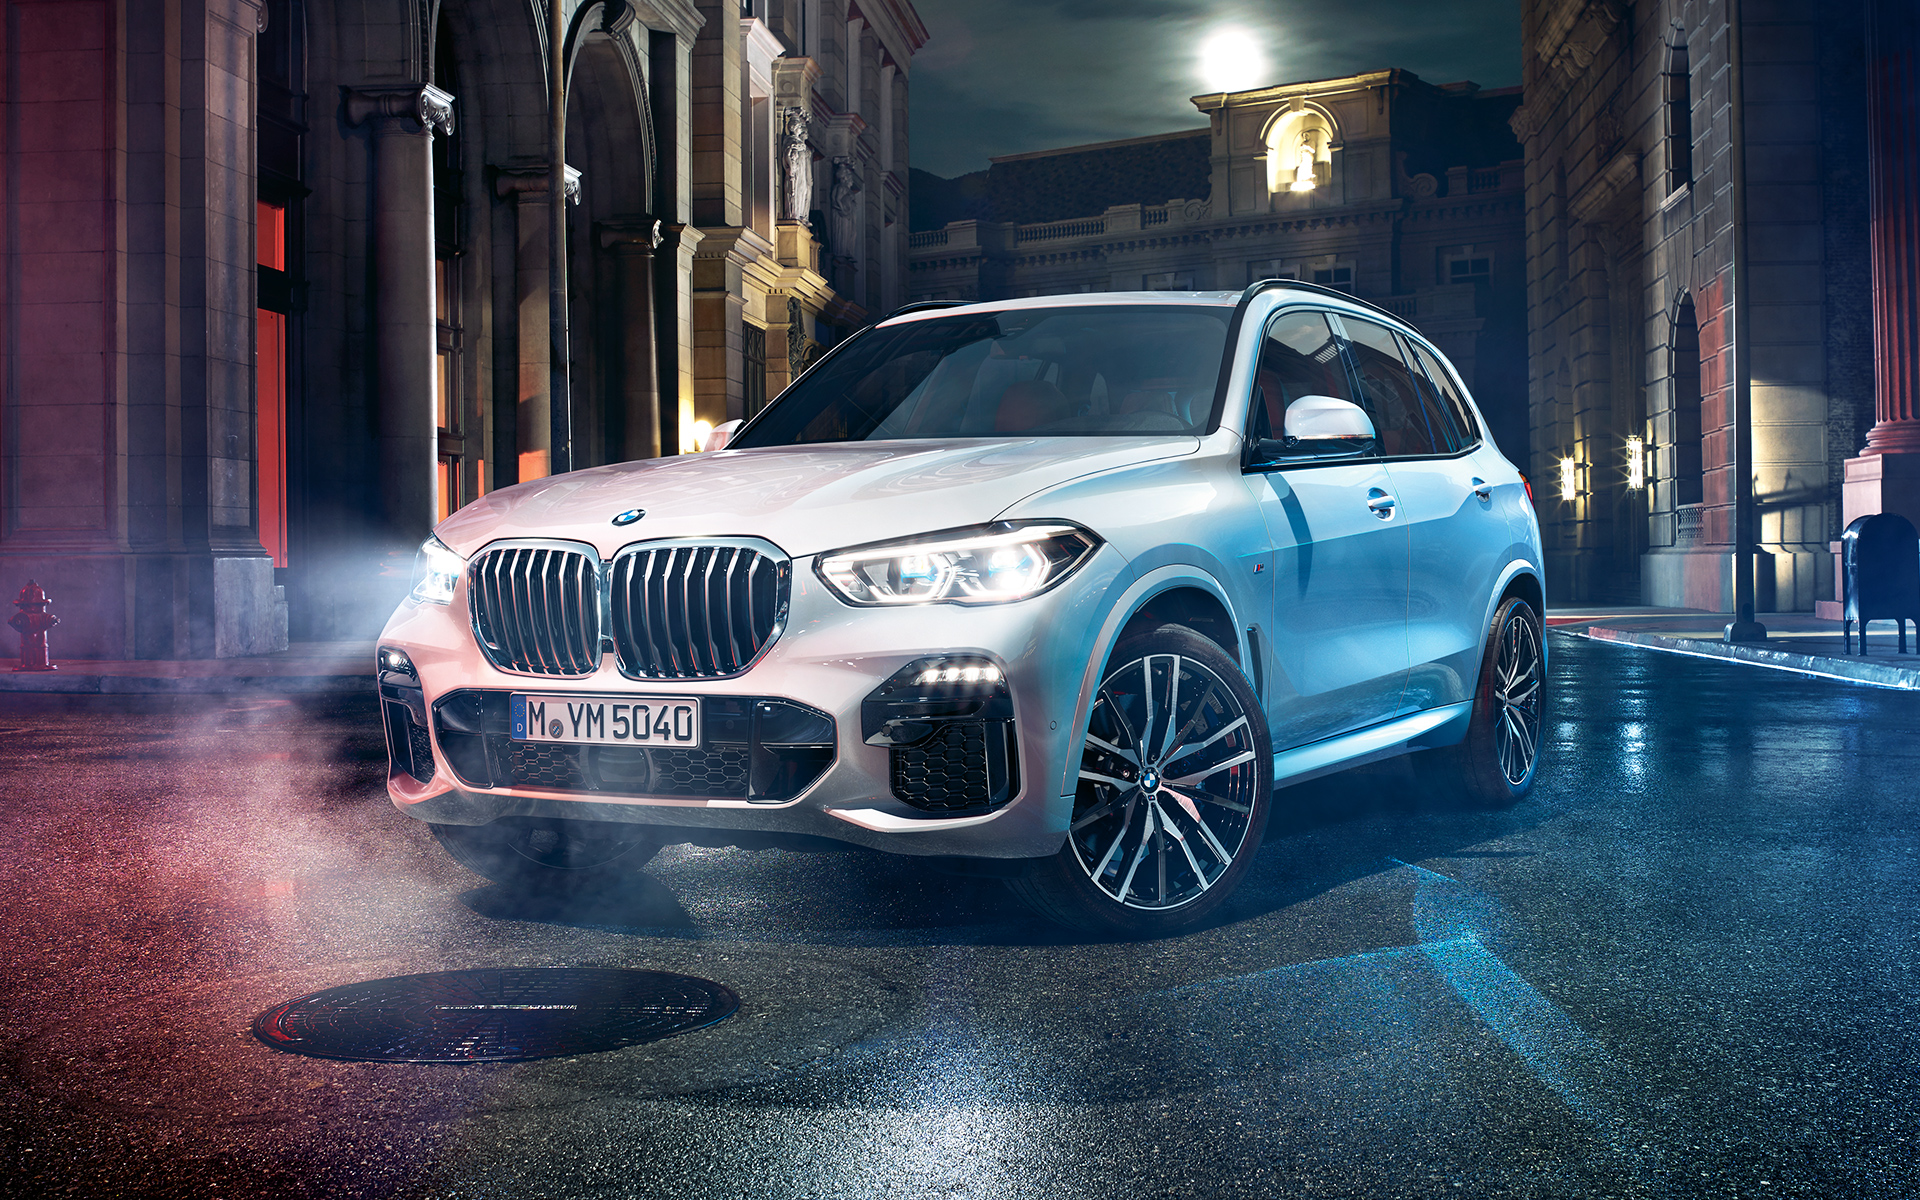 BMW-G05-X5-wallpapers-5